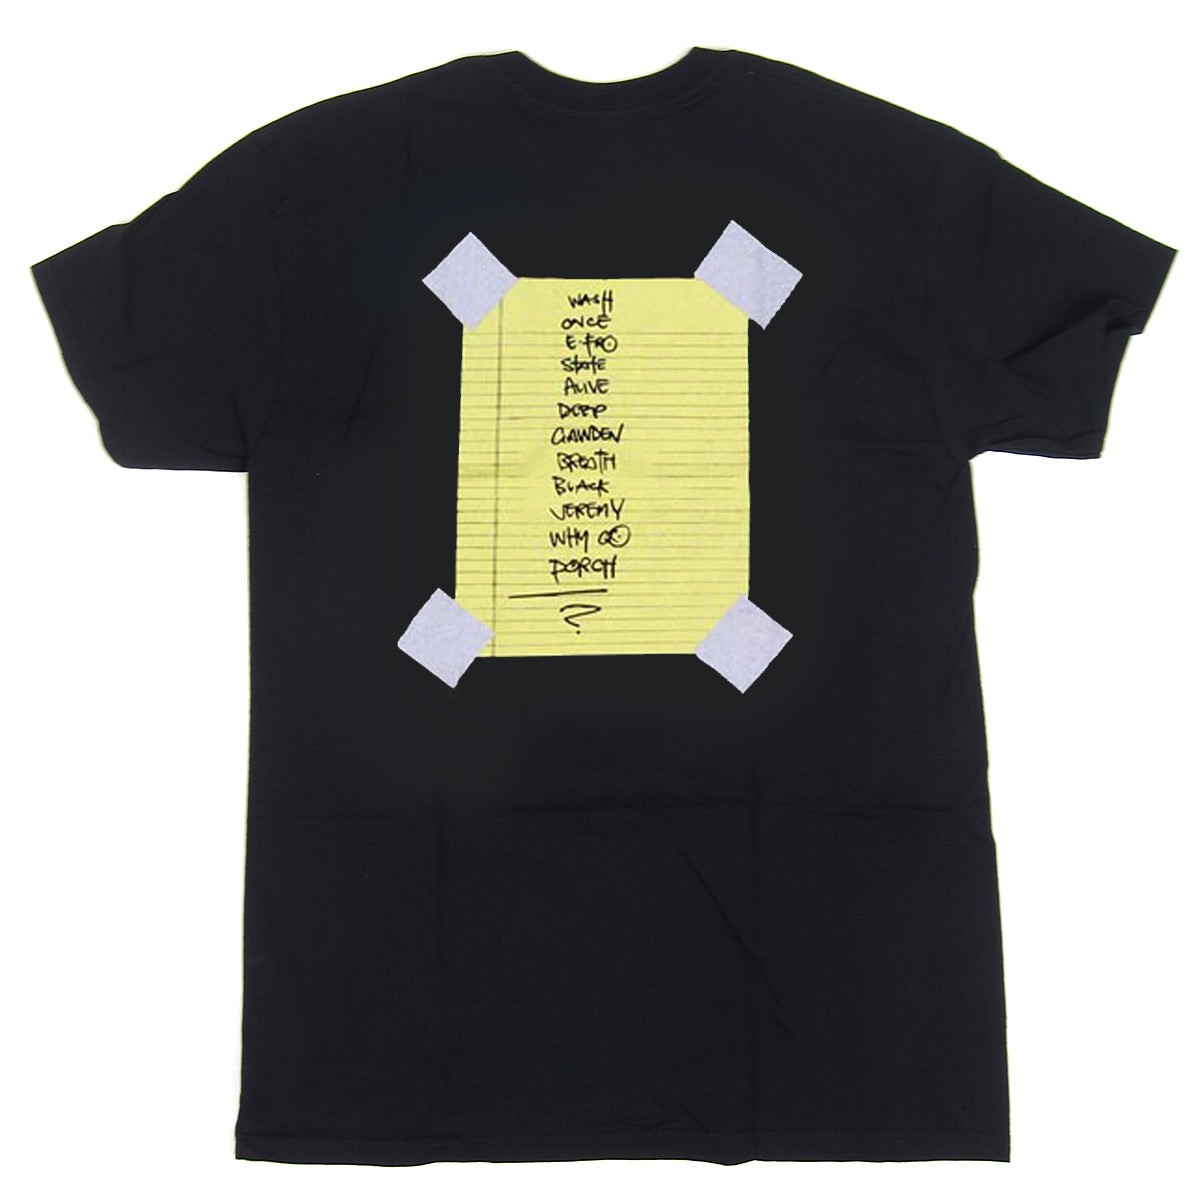 Pearl Jam: Stick Man Shirt - Black